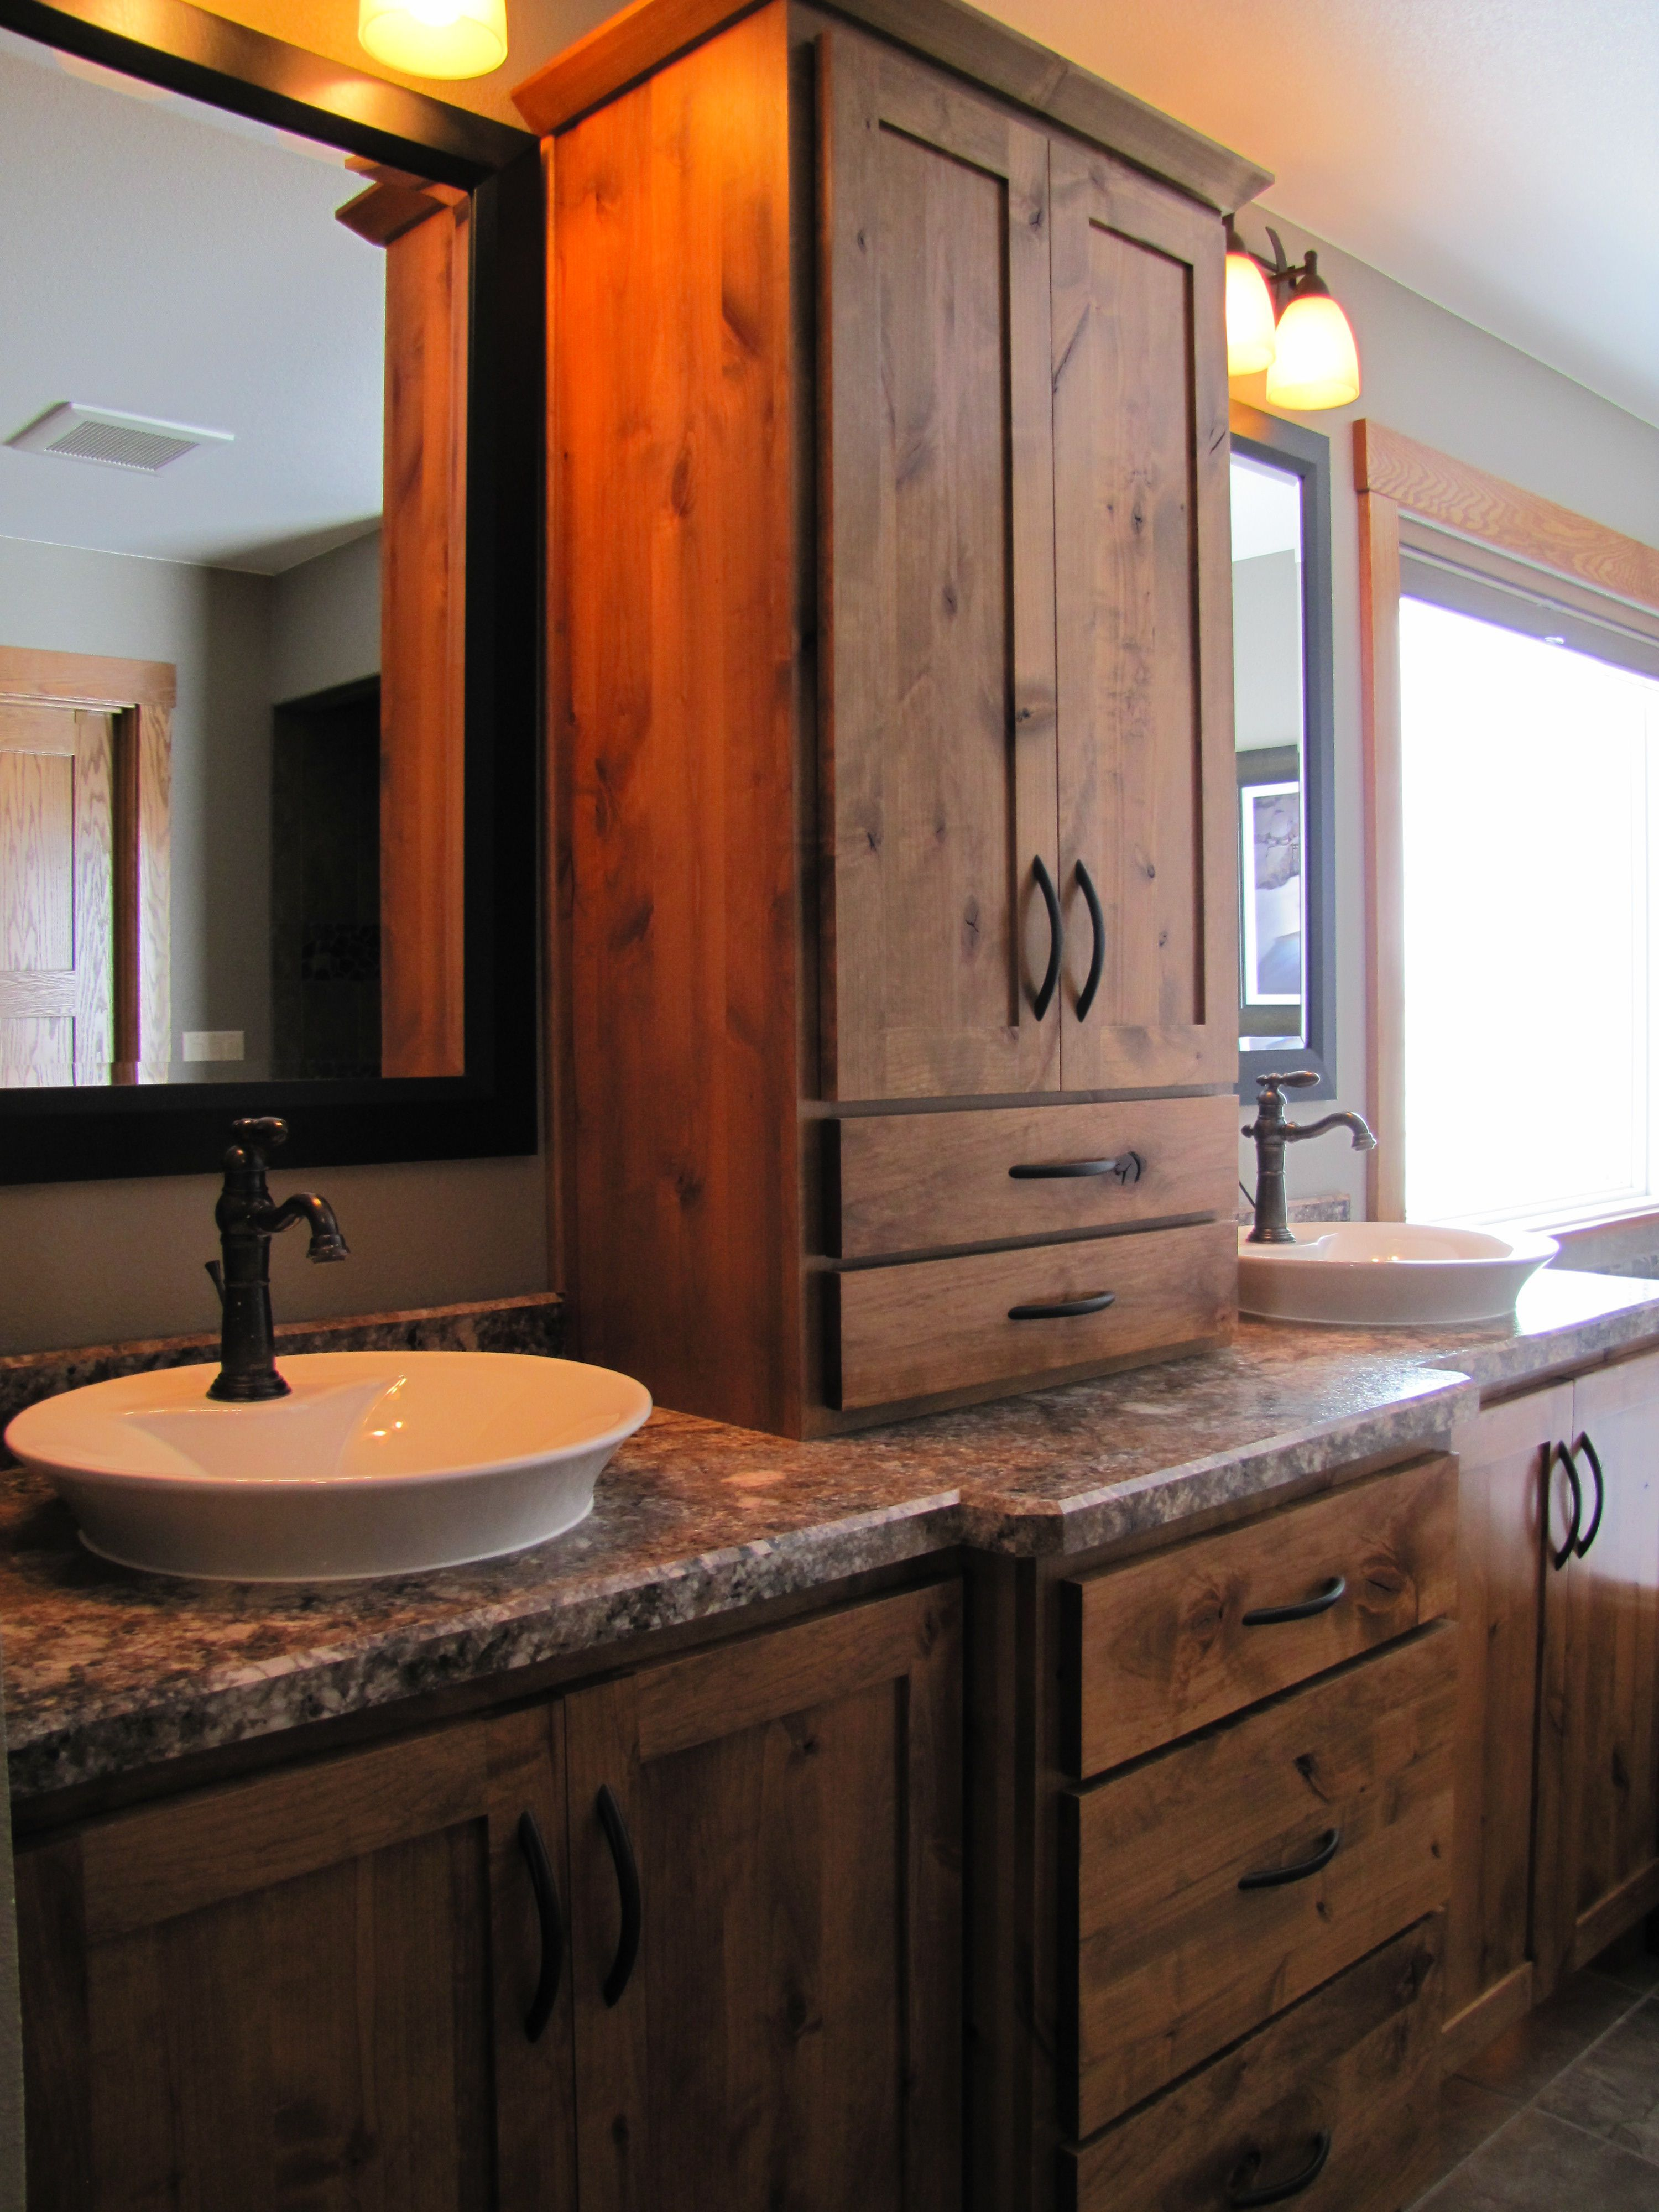 The Cons Of Bathroom Remodeling Rustic Bathrooms Rustic Bathroom Vanities Rustic Bathroom Decor